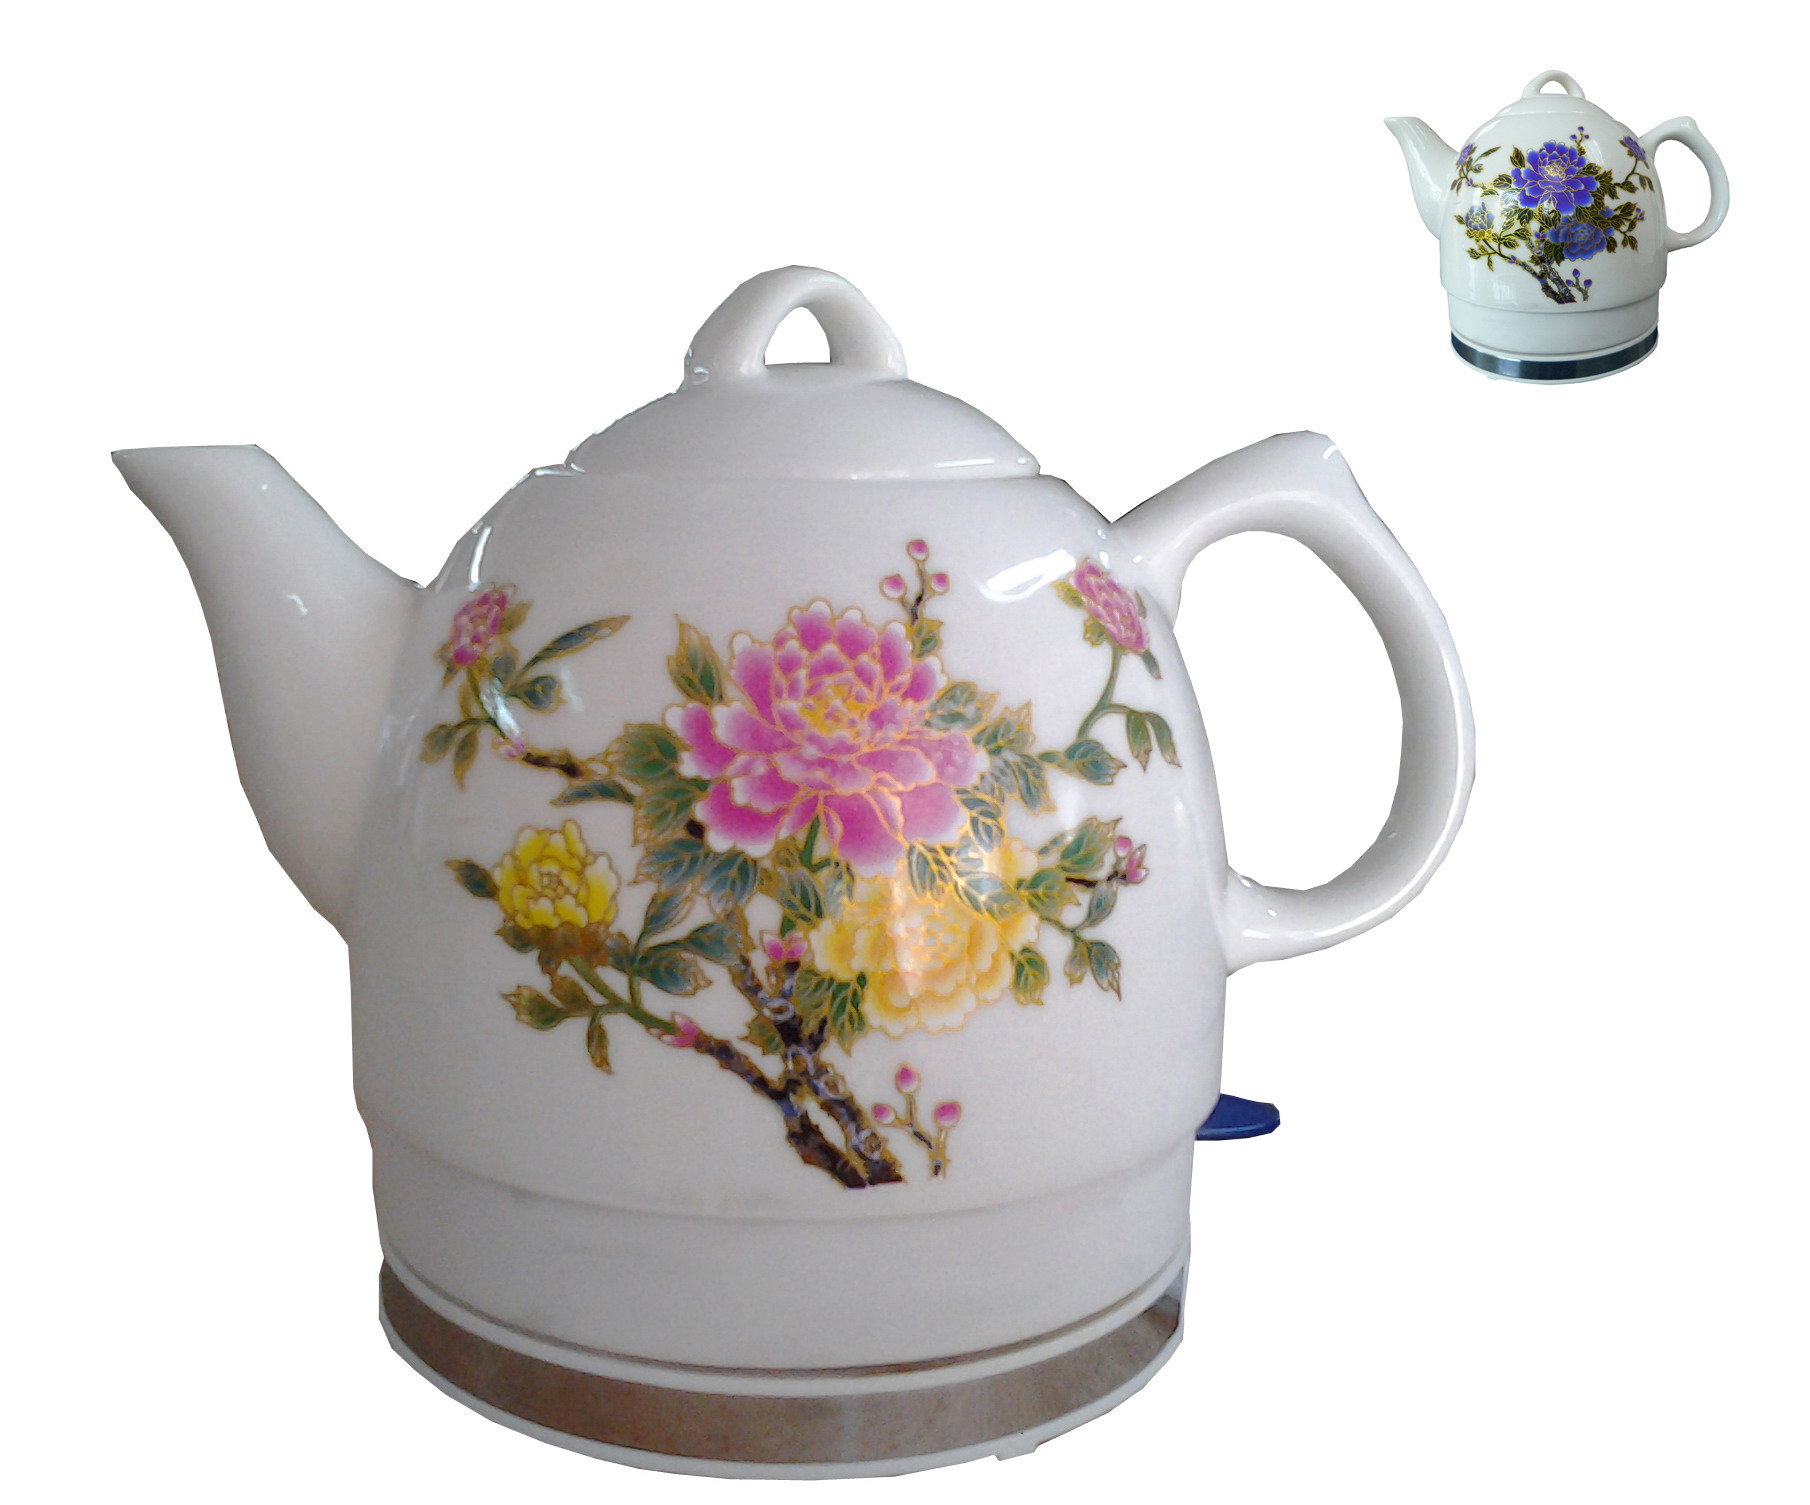 Porcelain Electric Kettle ~ Ceramic electric kettle with peony flower pattern two tone